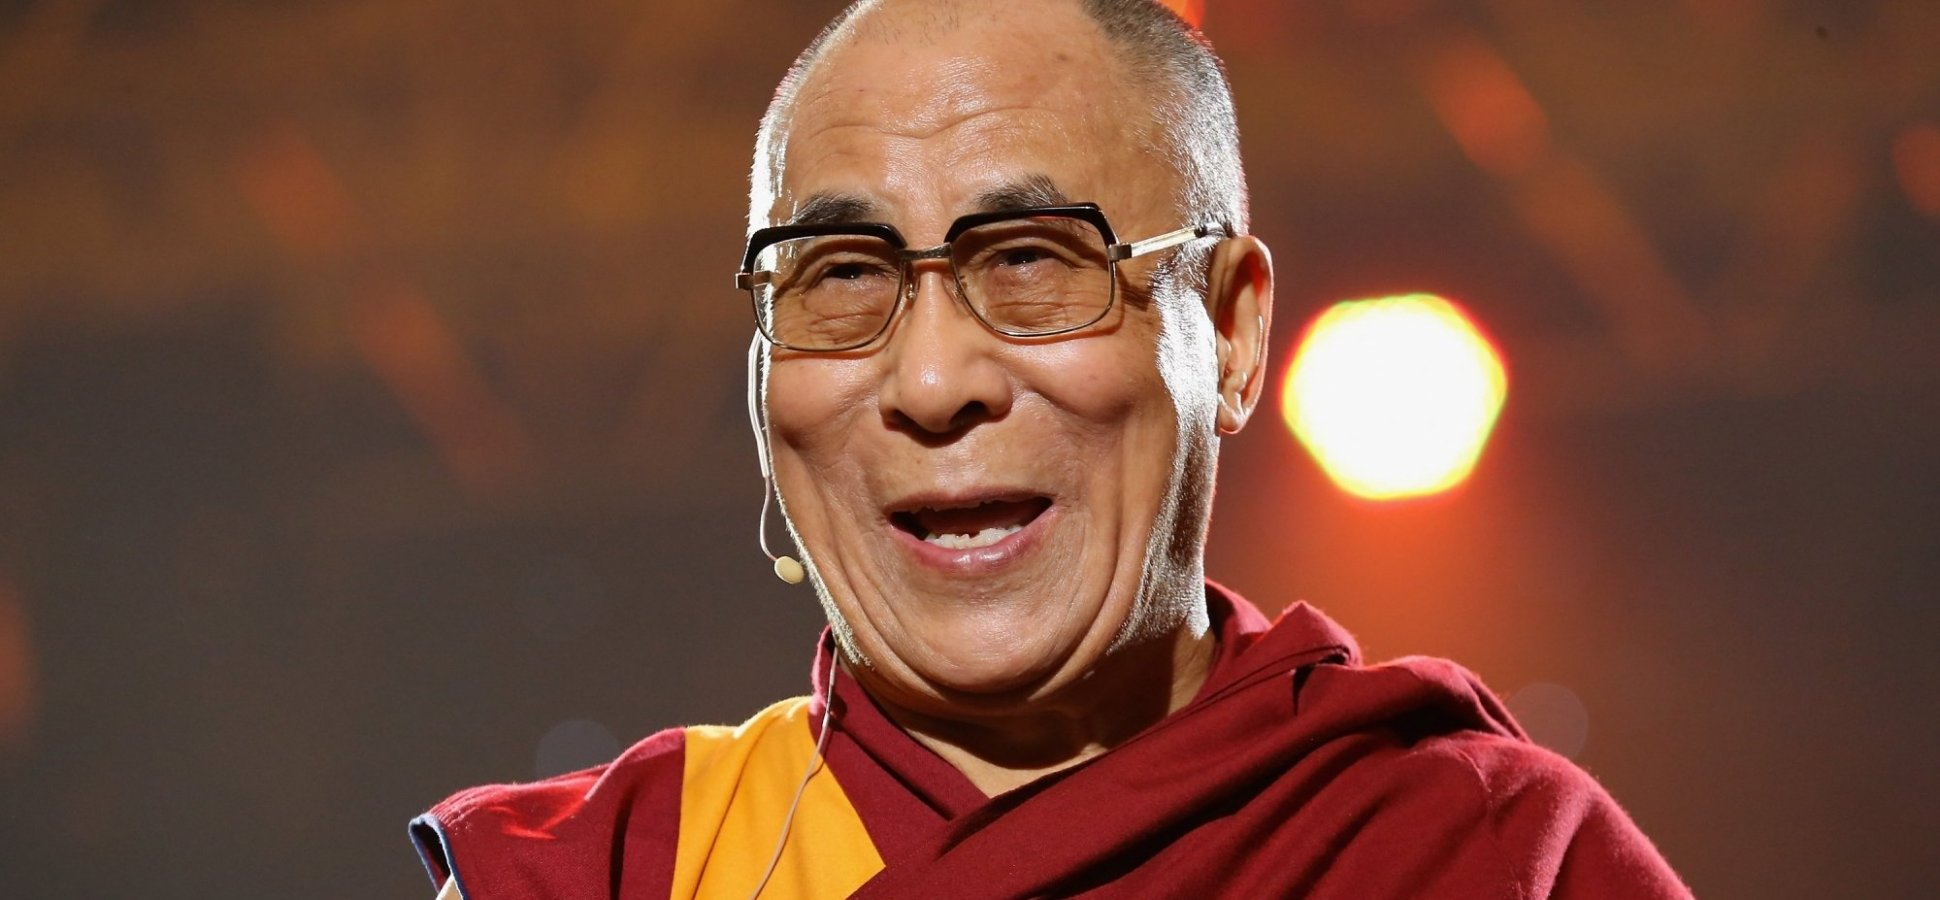 The Dalai Lama Says Great Leaders All Share These 3 Powerfully Inspiring Qualities